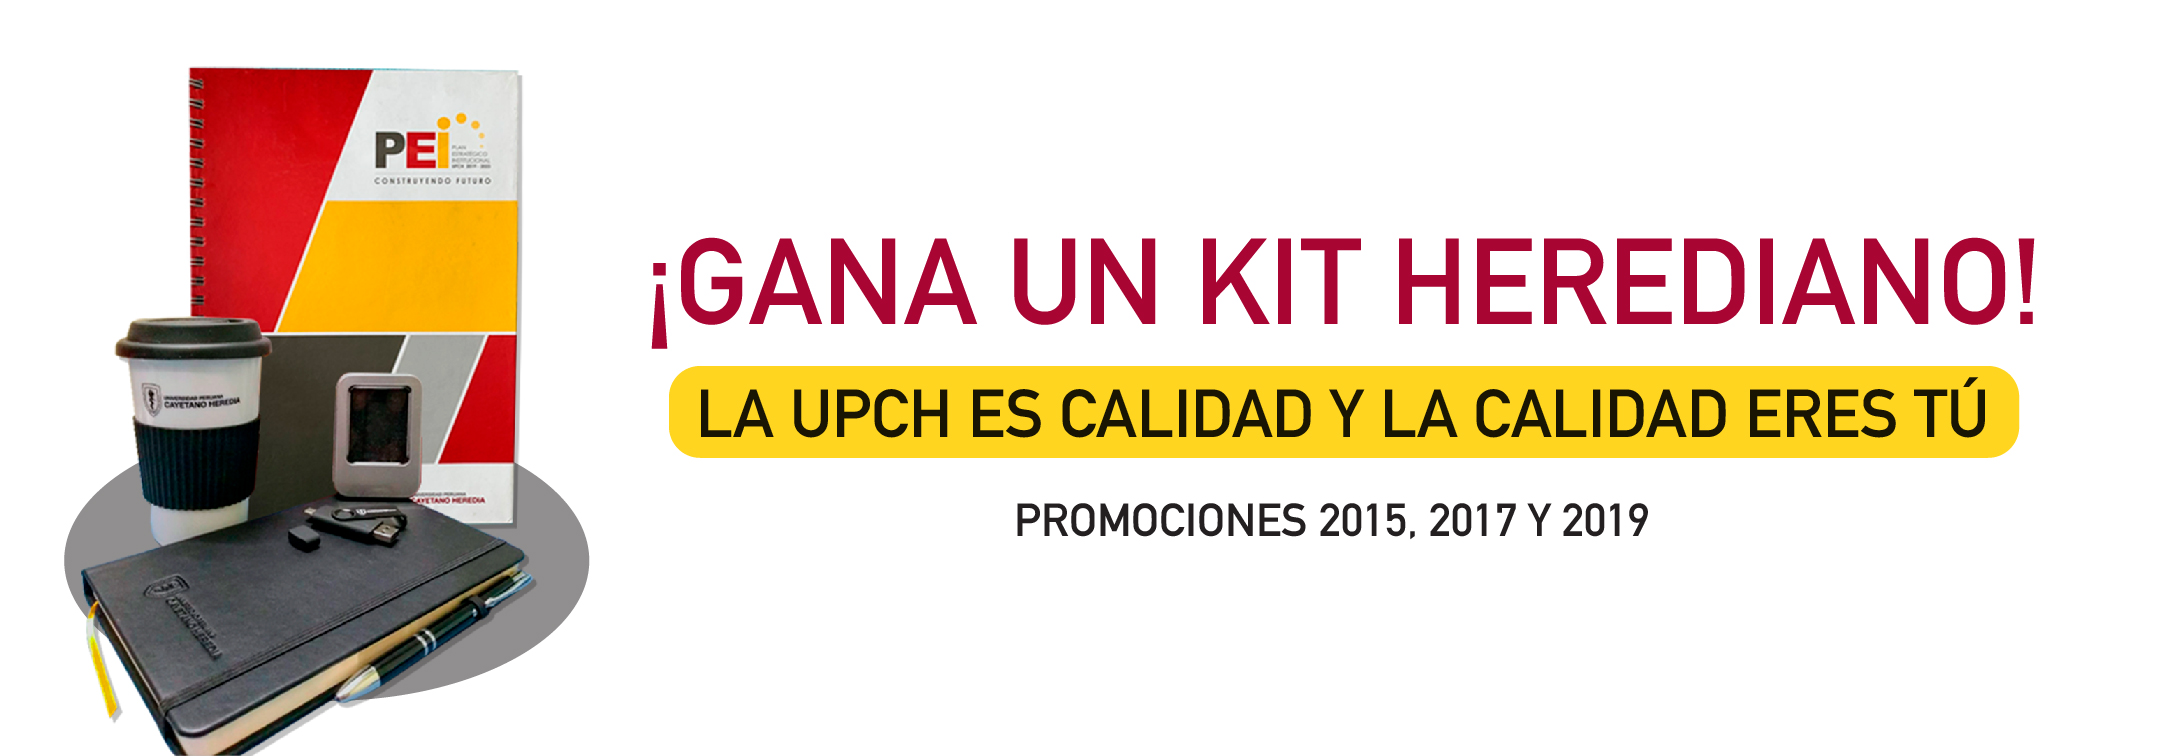 ¡Gana un kit herediano!